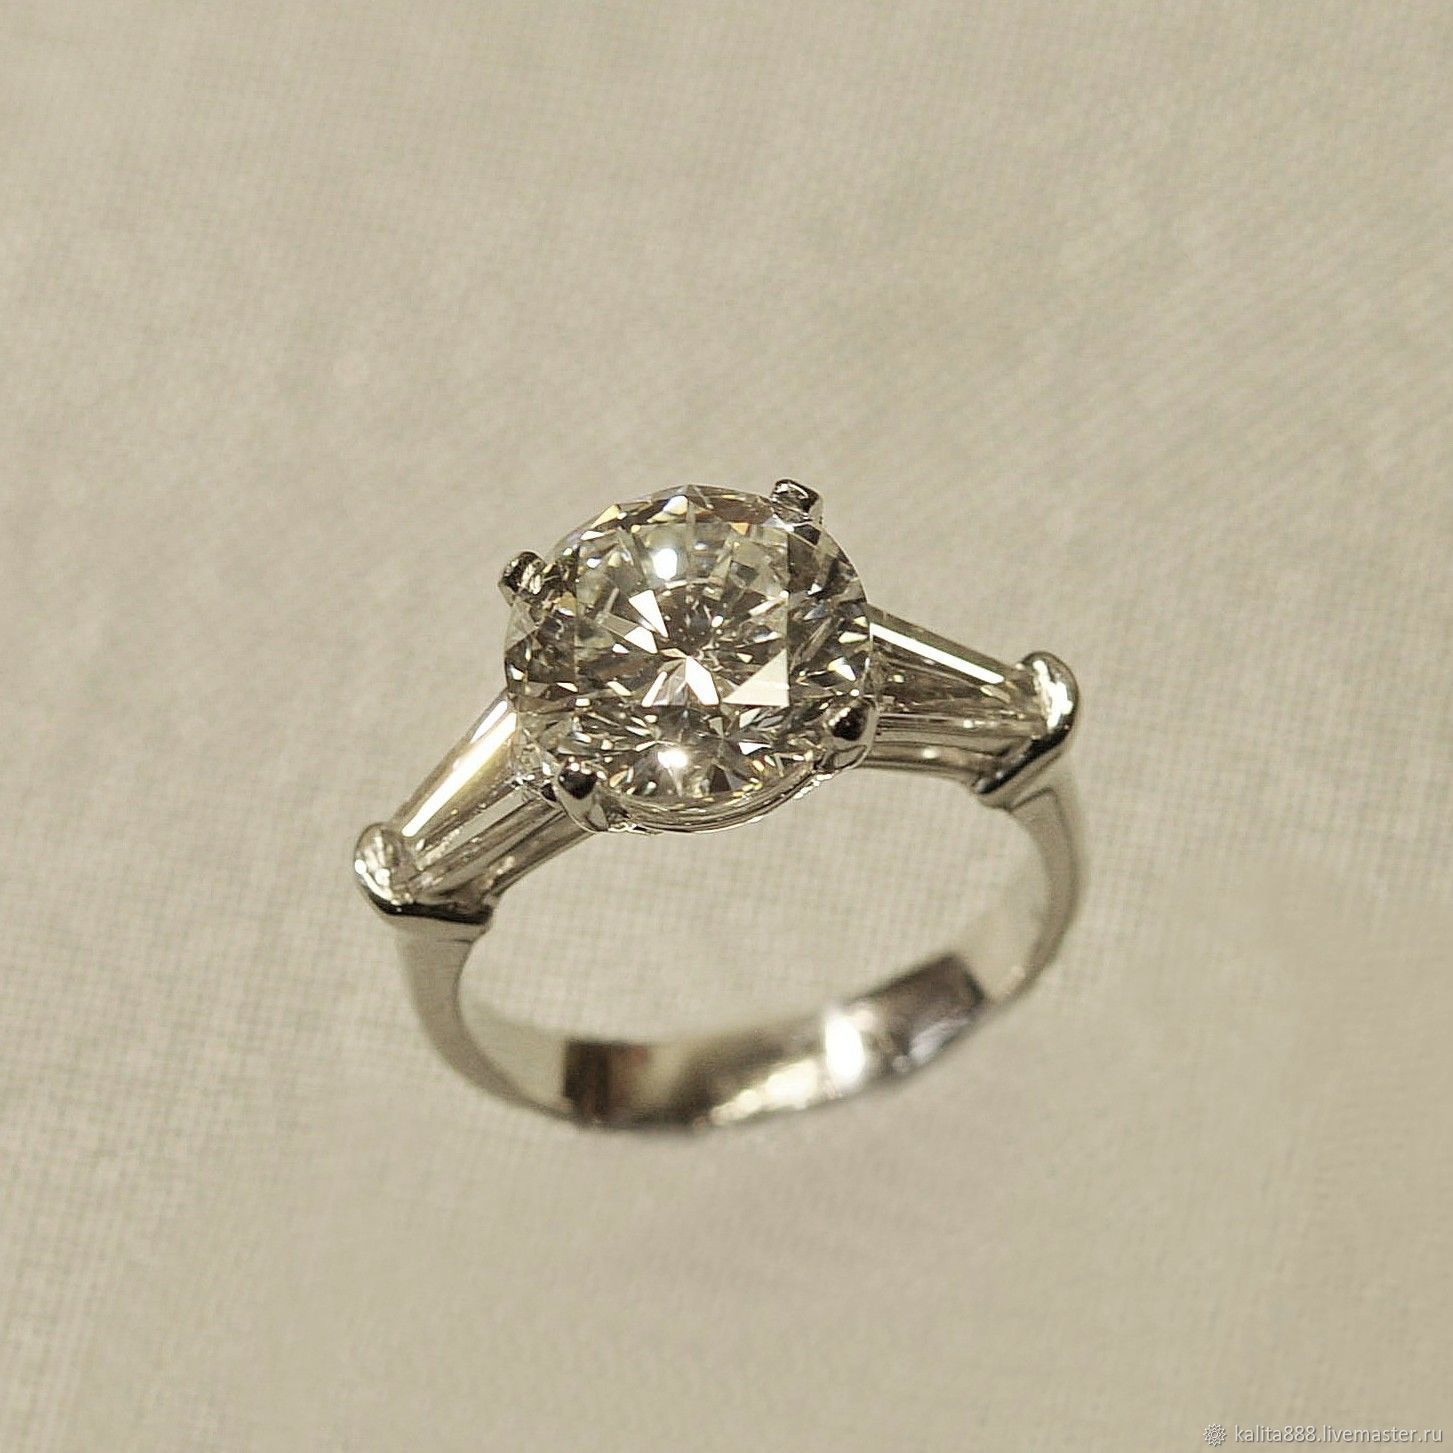 Platinum ring with 4 ct diamond, Rings, Moscow,  Фото №1